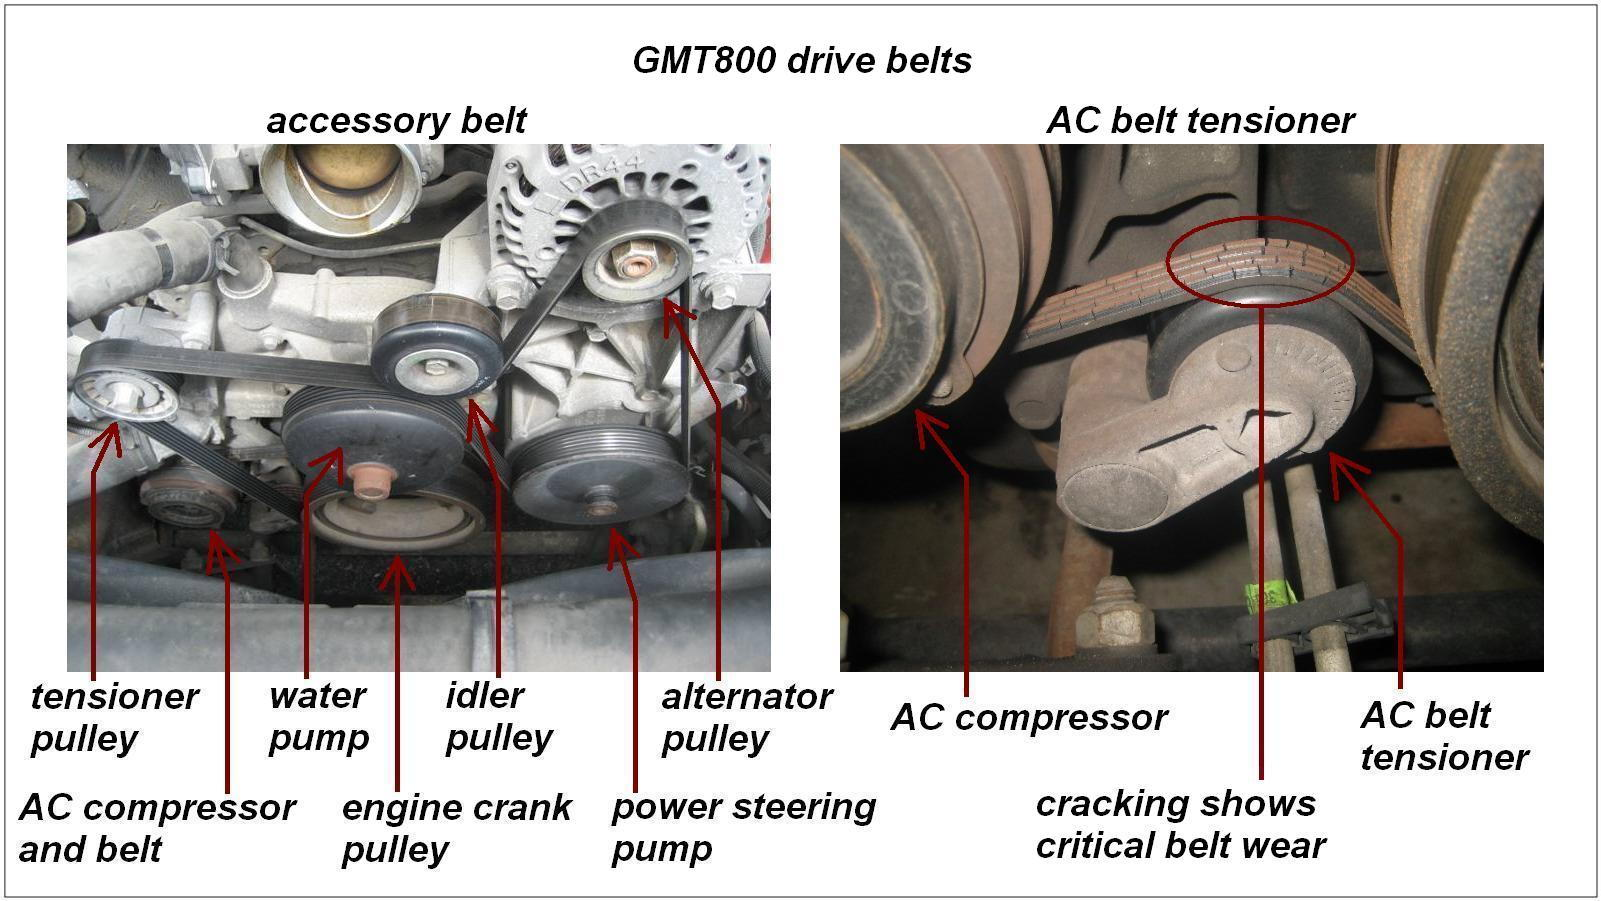 hight resolution of gmt800 drive belts and components